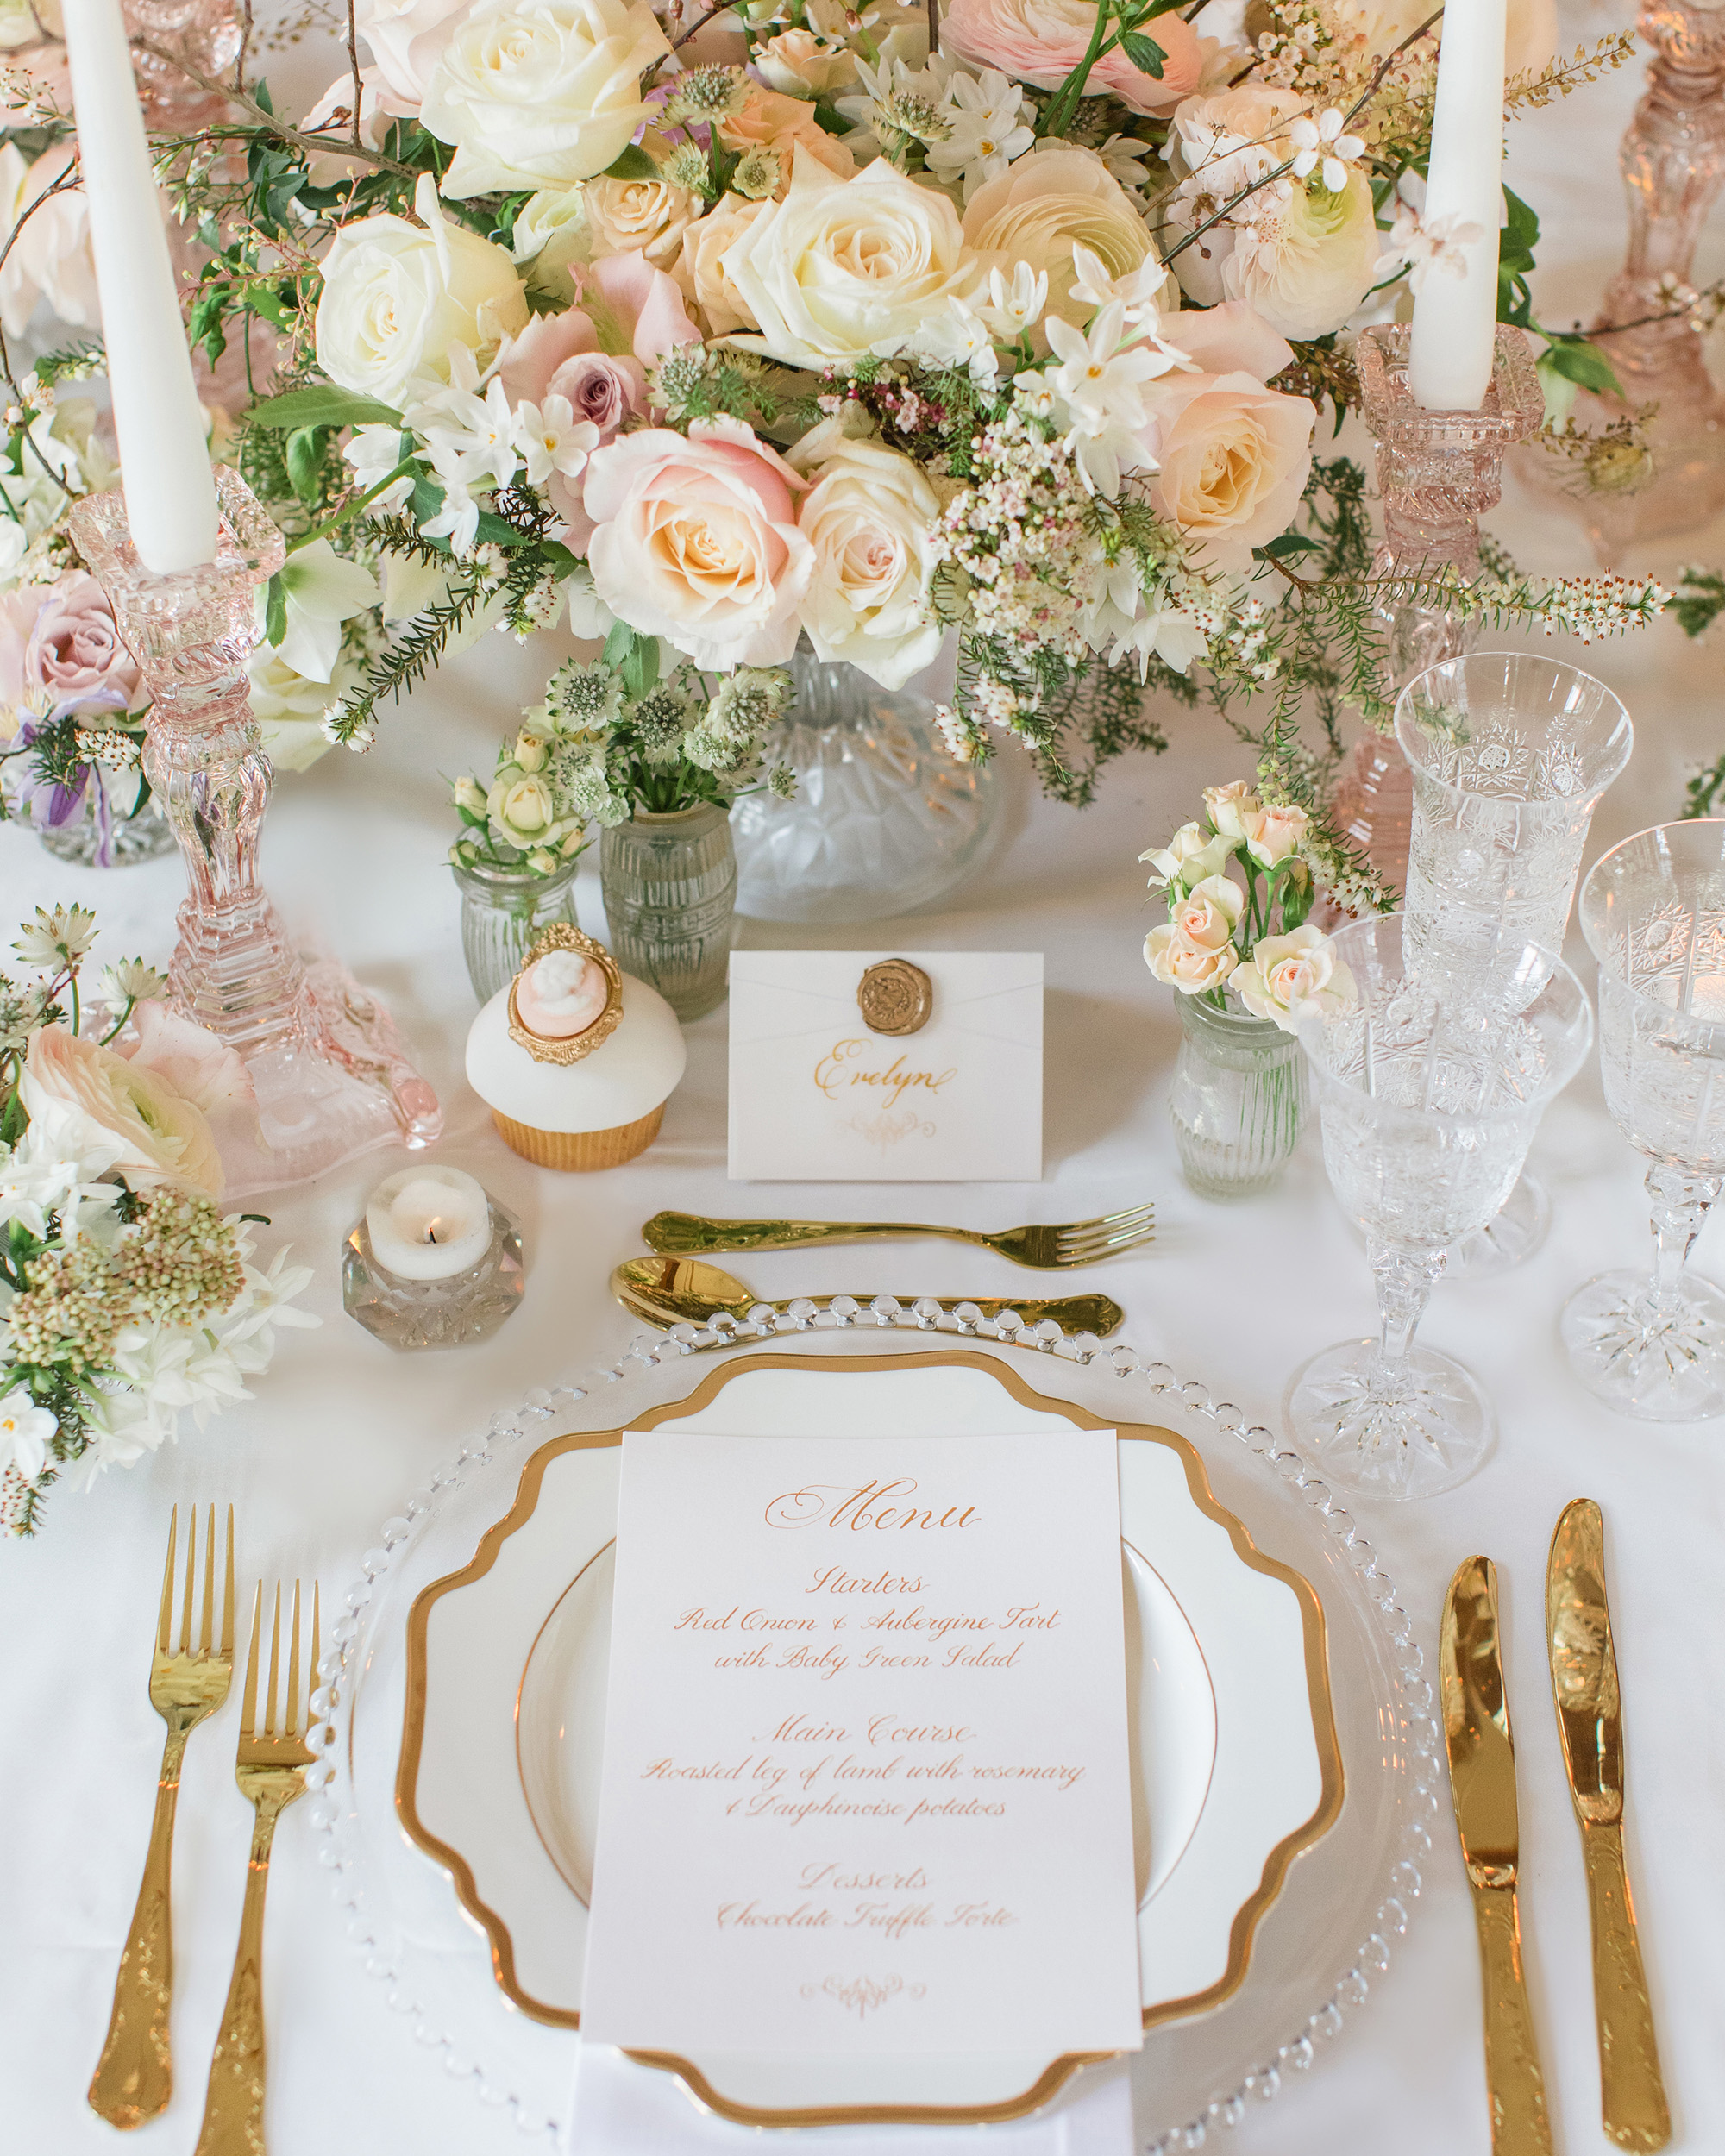 glamorous wedding ideas elevated centerpiece table setting